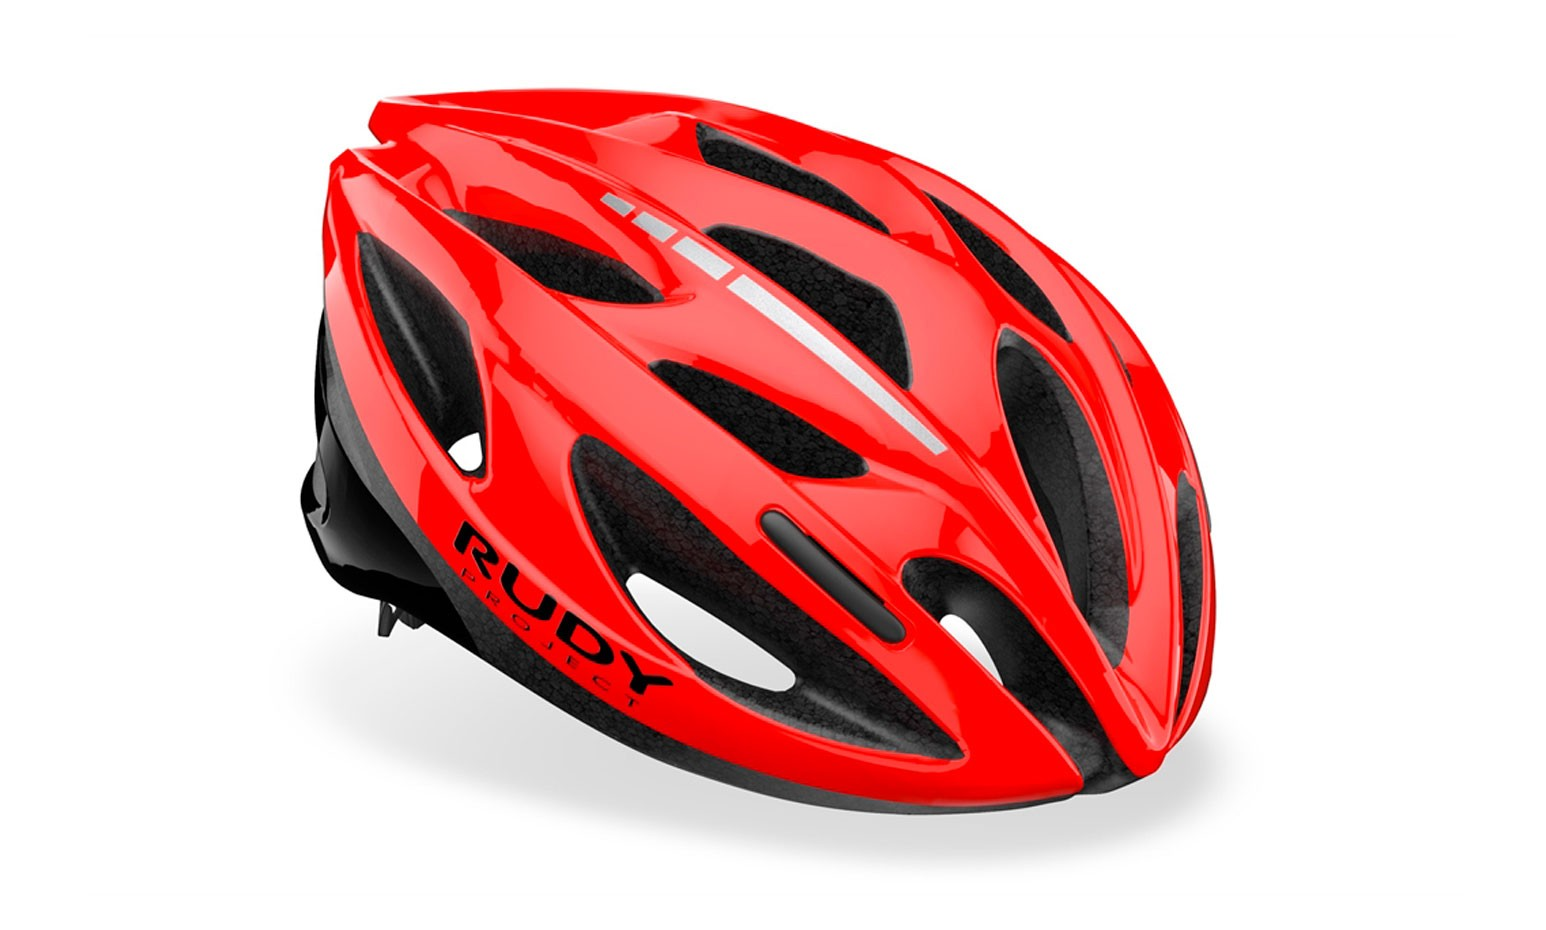 Capacete Rudy Project Modelo Zumy Red Shiny Tam (s/m)